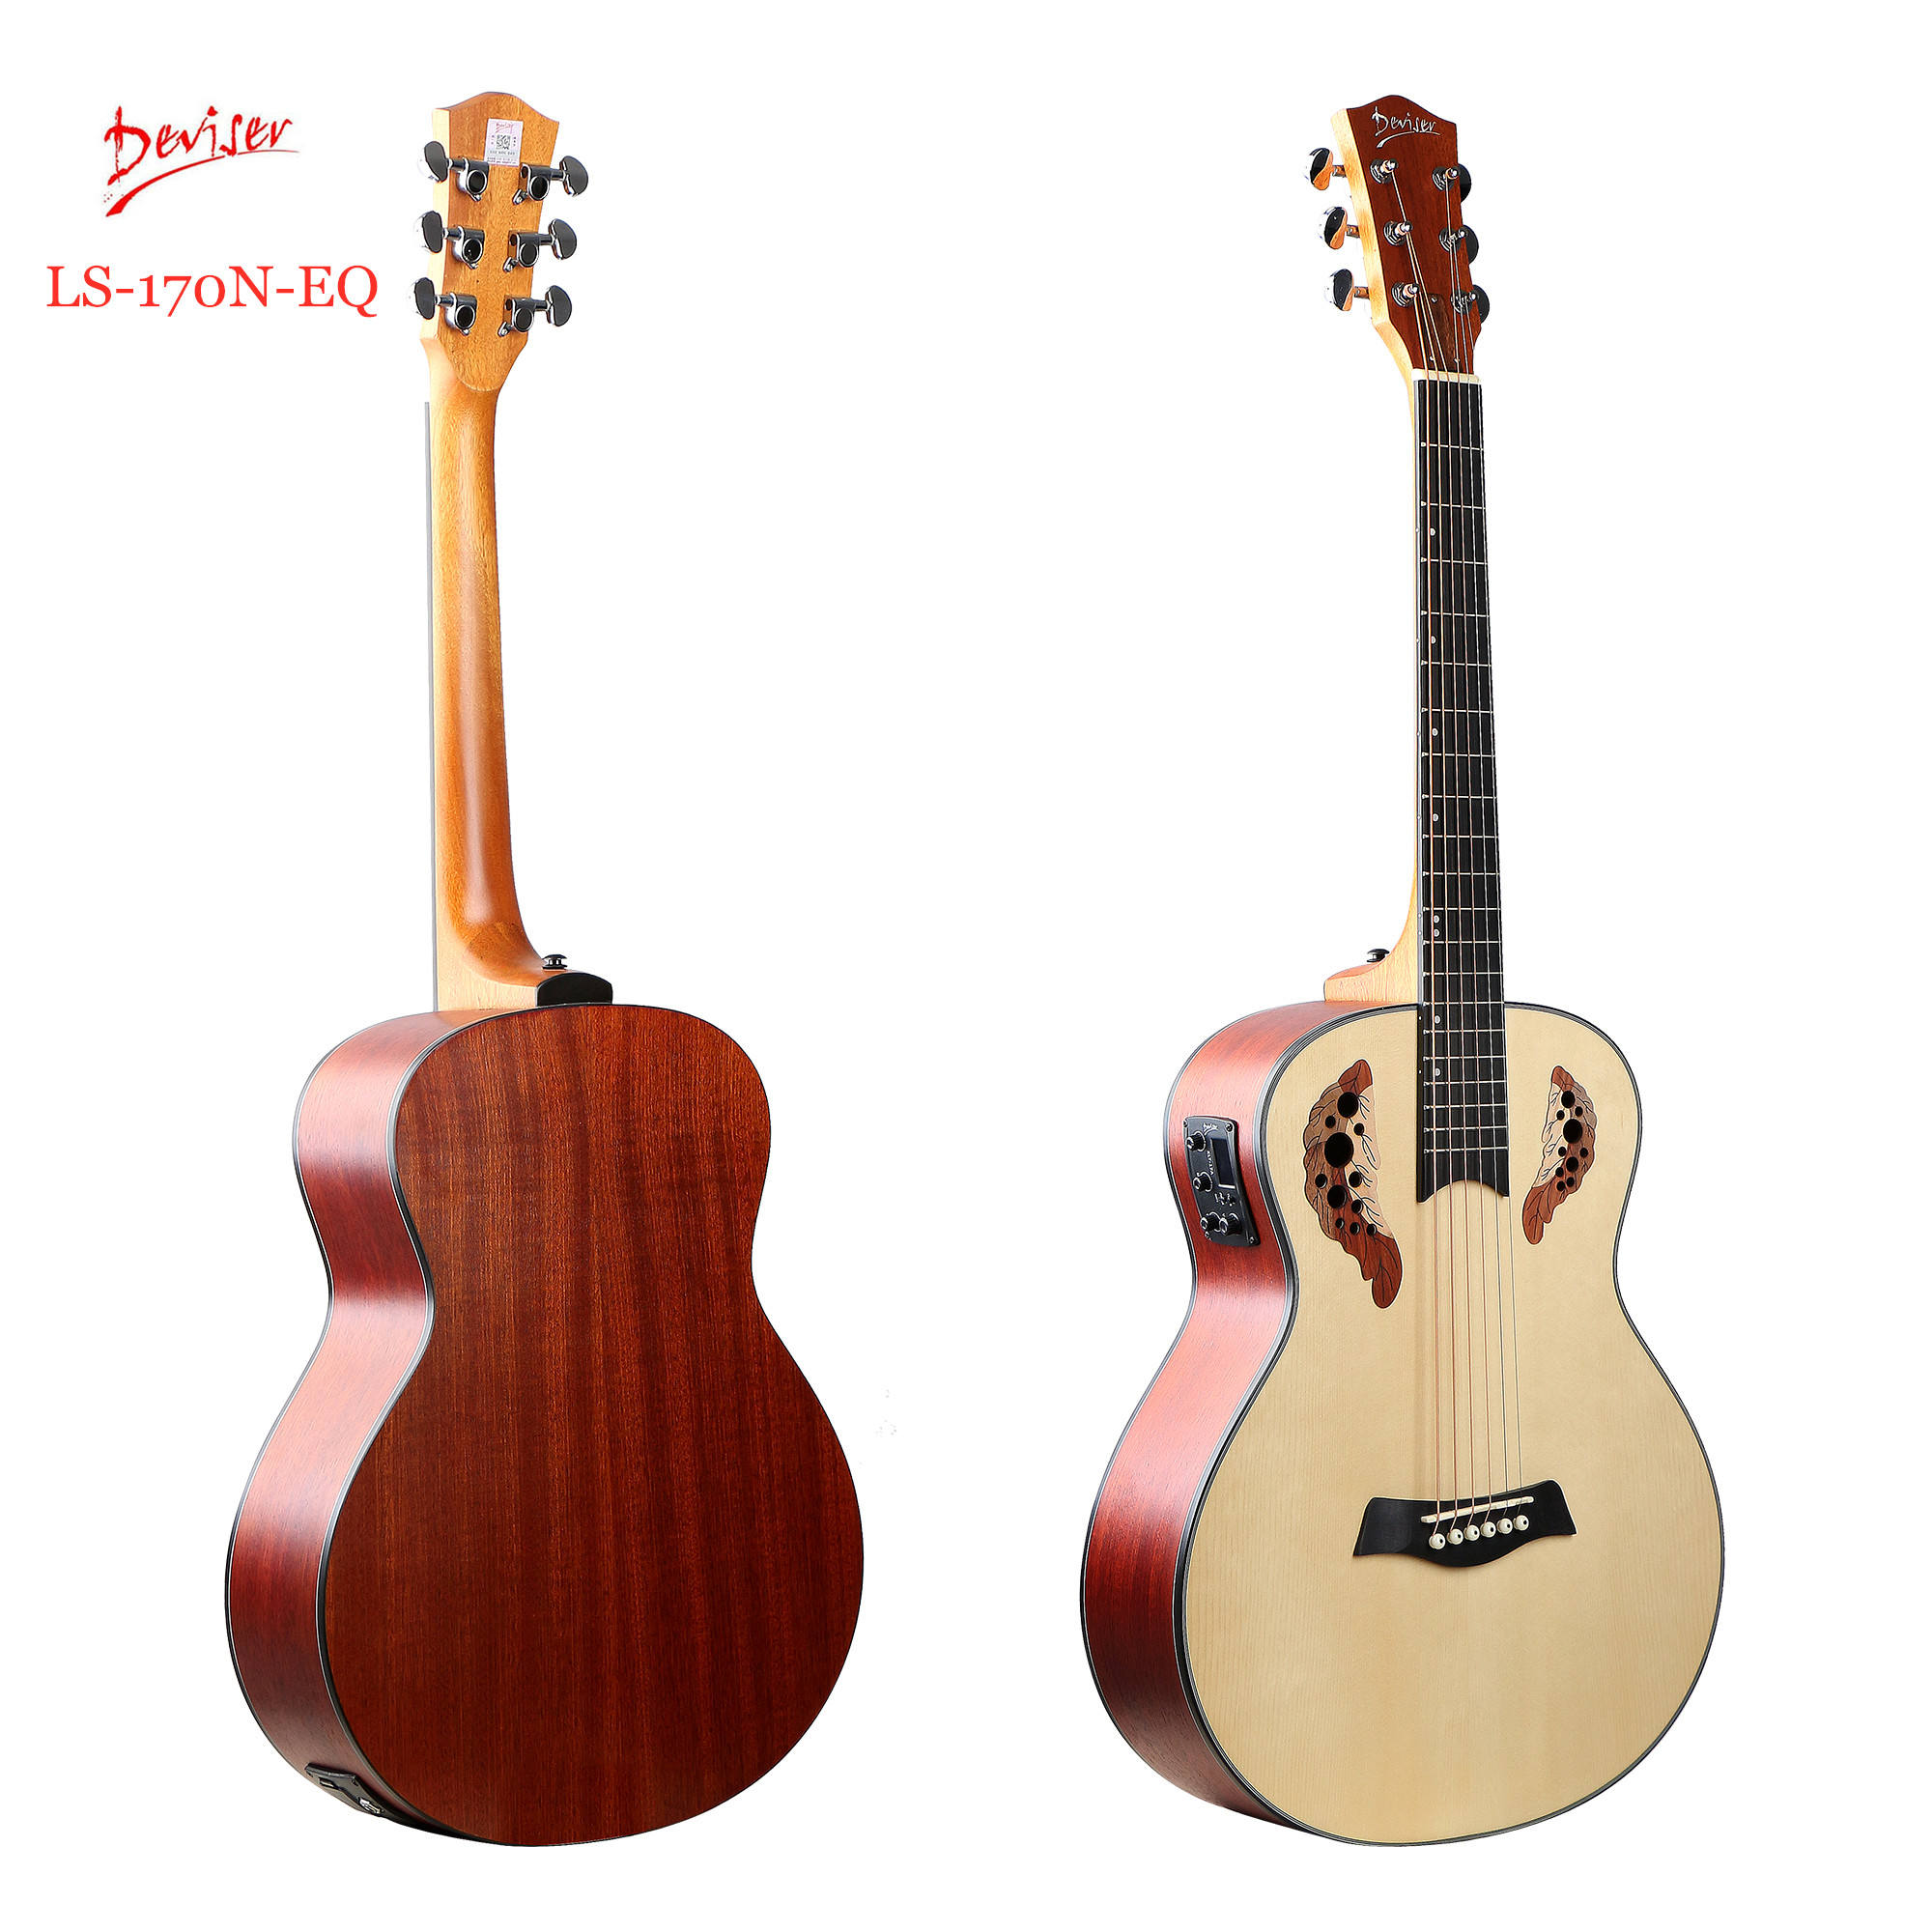 "36"" ovation musical instruments Semi Hollow electric acoustic guitars built in FREE pickup made in China"